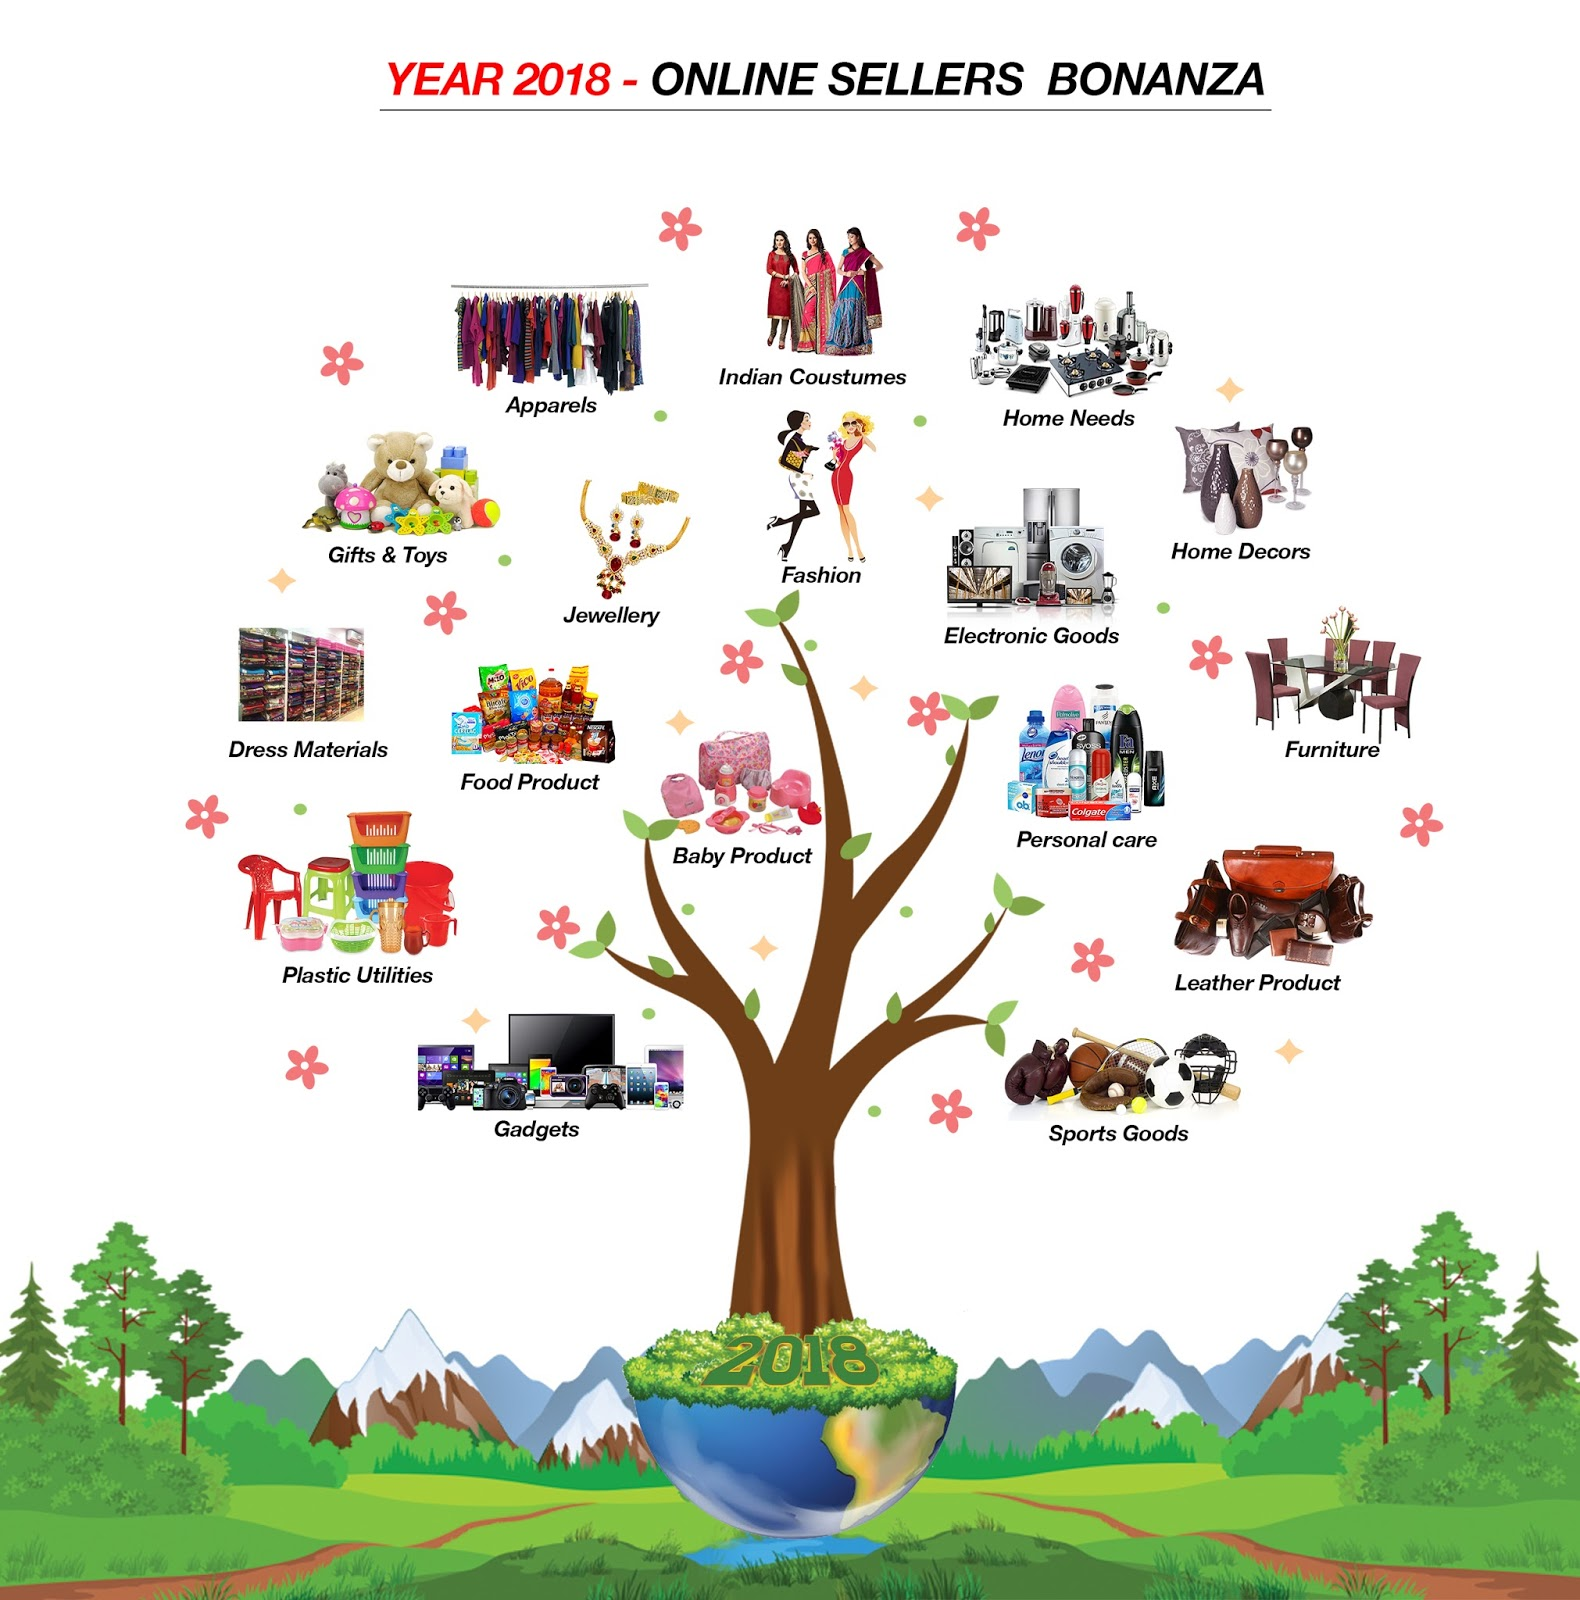 SELLinALL Blog: THE YEAR 2018 - A BONANZA FOR ONLINE SELLERS